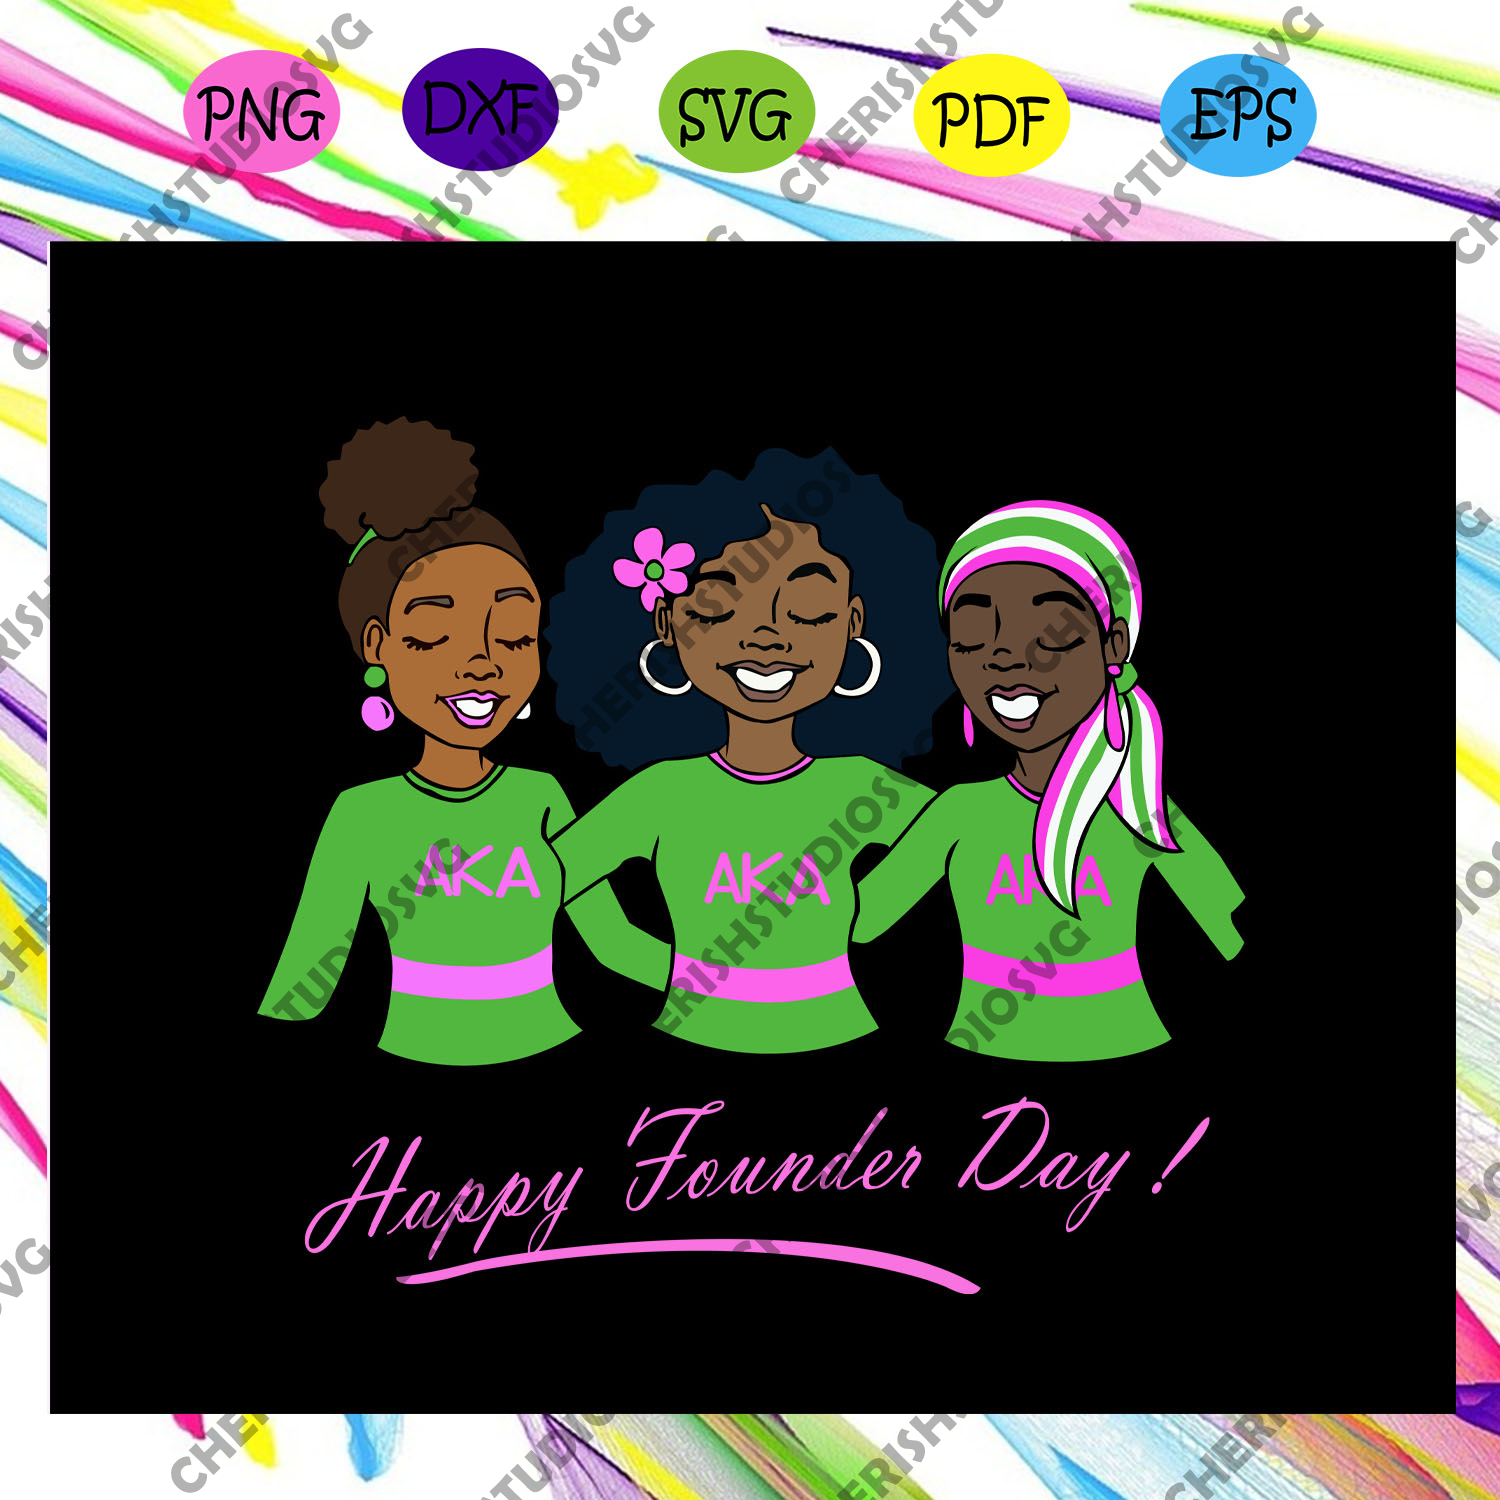 Happy founder day, aka sorority gift, aka sorority svg, Aka svg, aka shirt, aka sorority, alpha kappa alpha svg, alpha kappa alpha shirt, Files For Silhouette, Files For Cricut, SVG, DXF, EPS, PNG, Instant Download